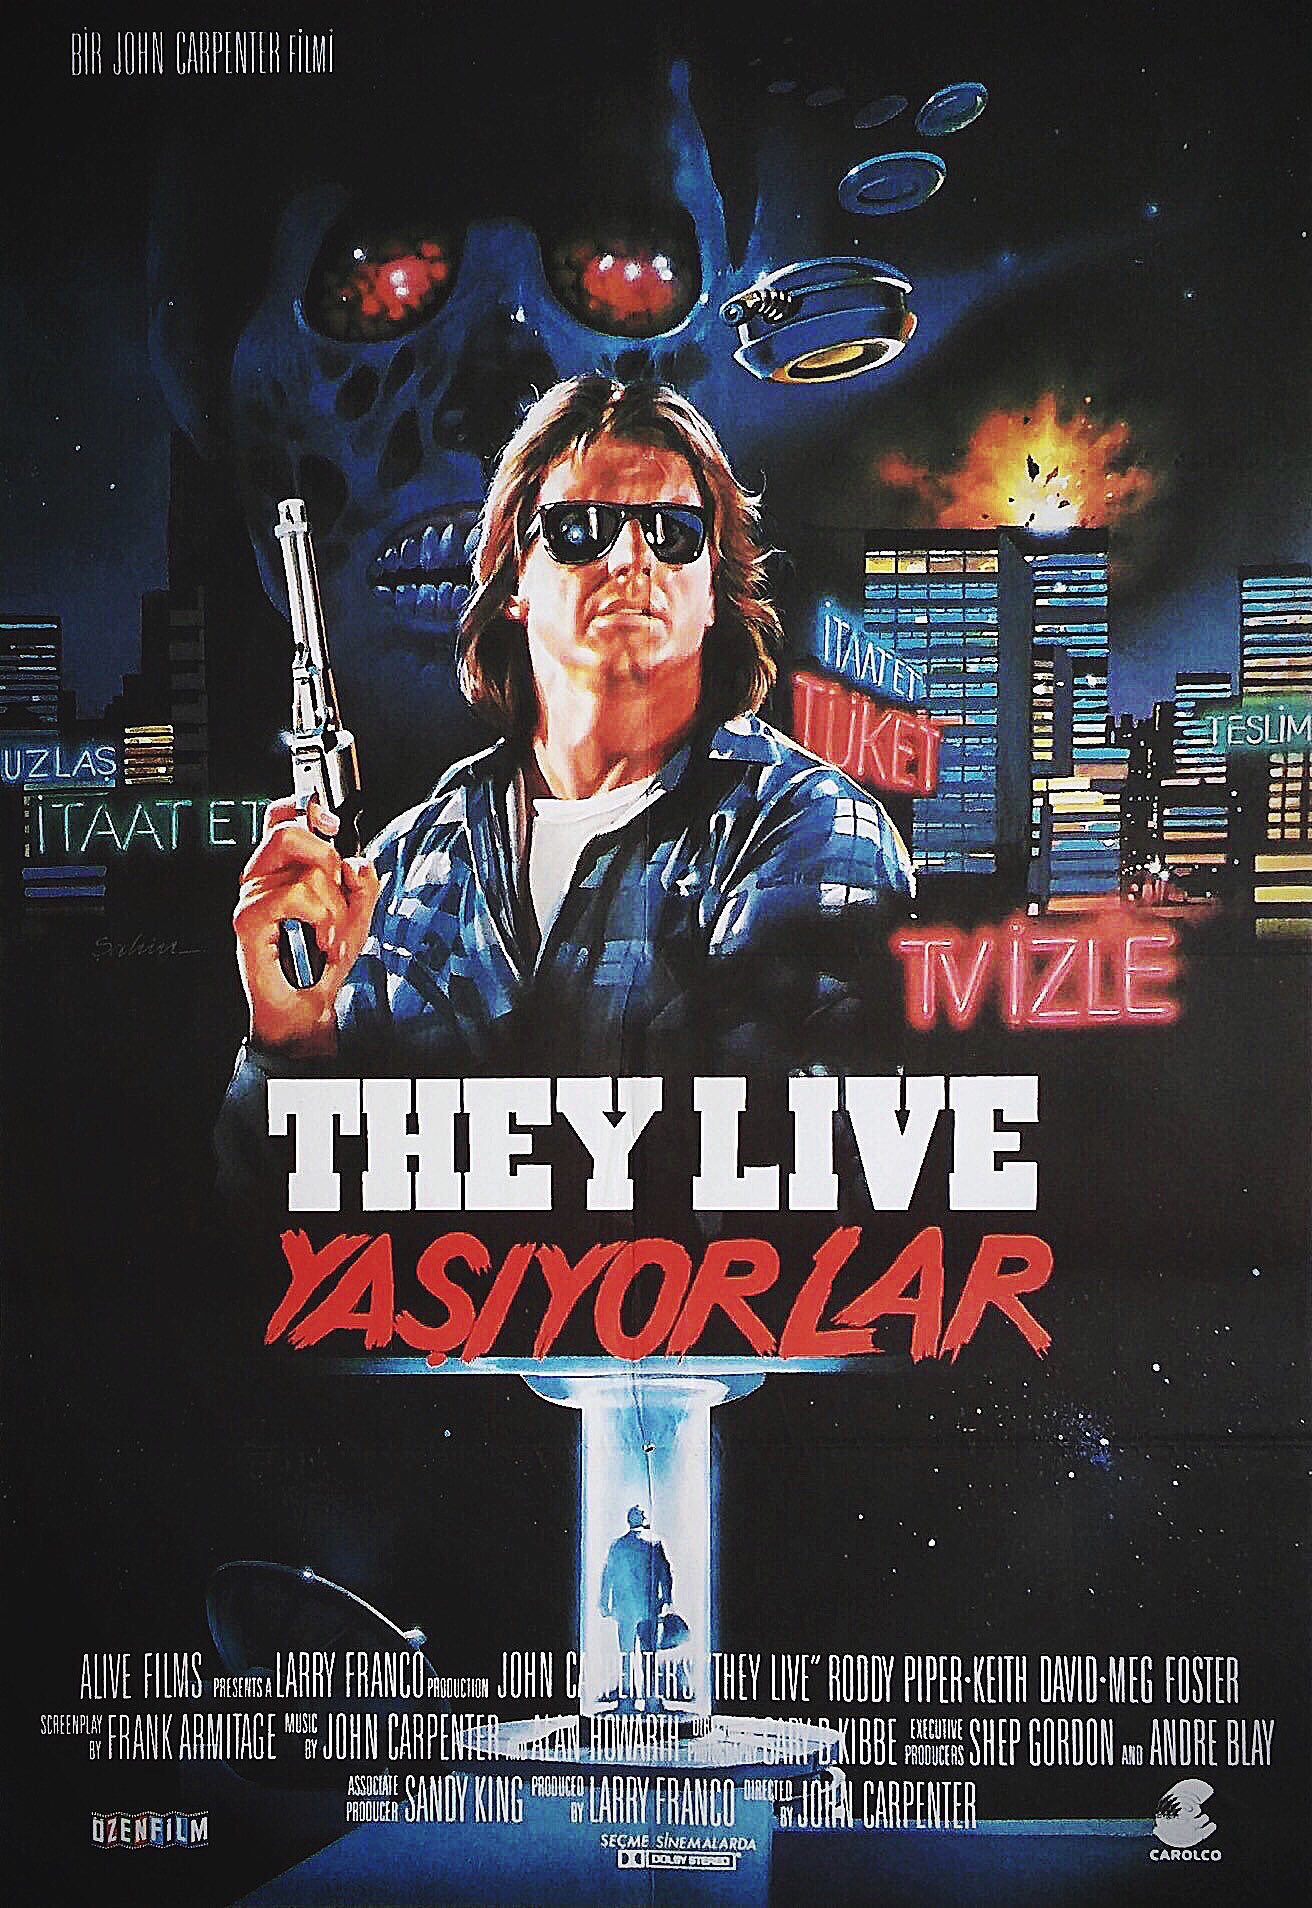 They Live Turkish poster